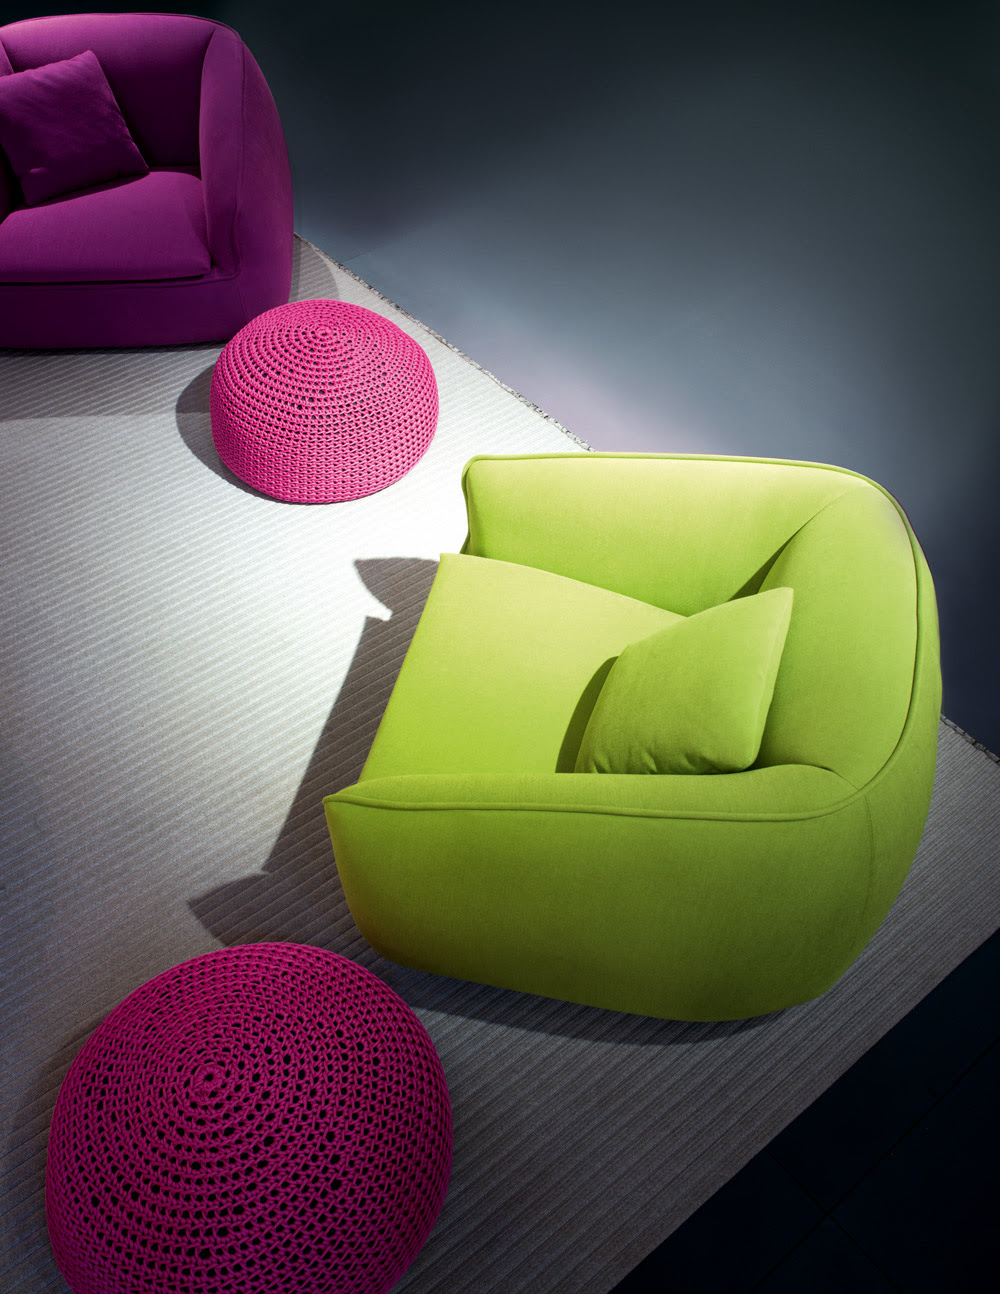 Colorful Couches | Home Designing